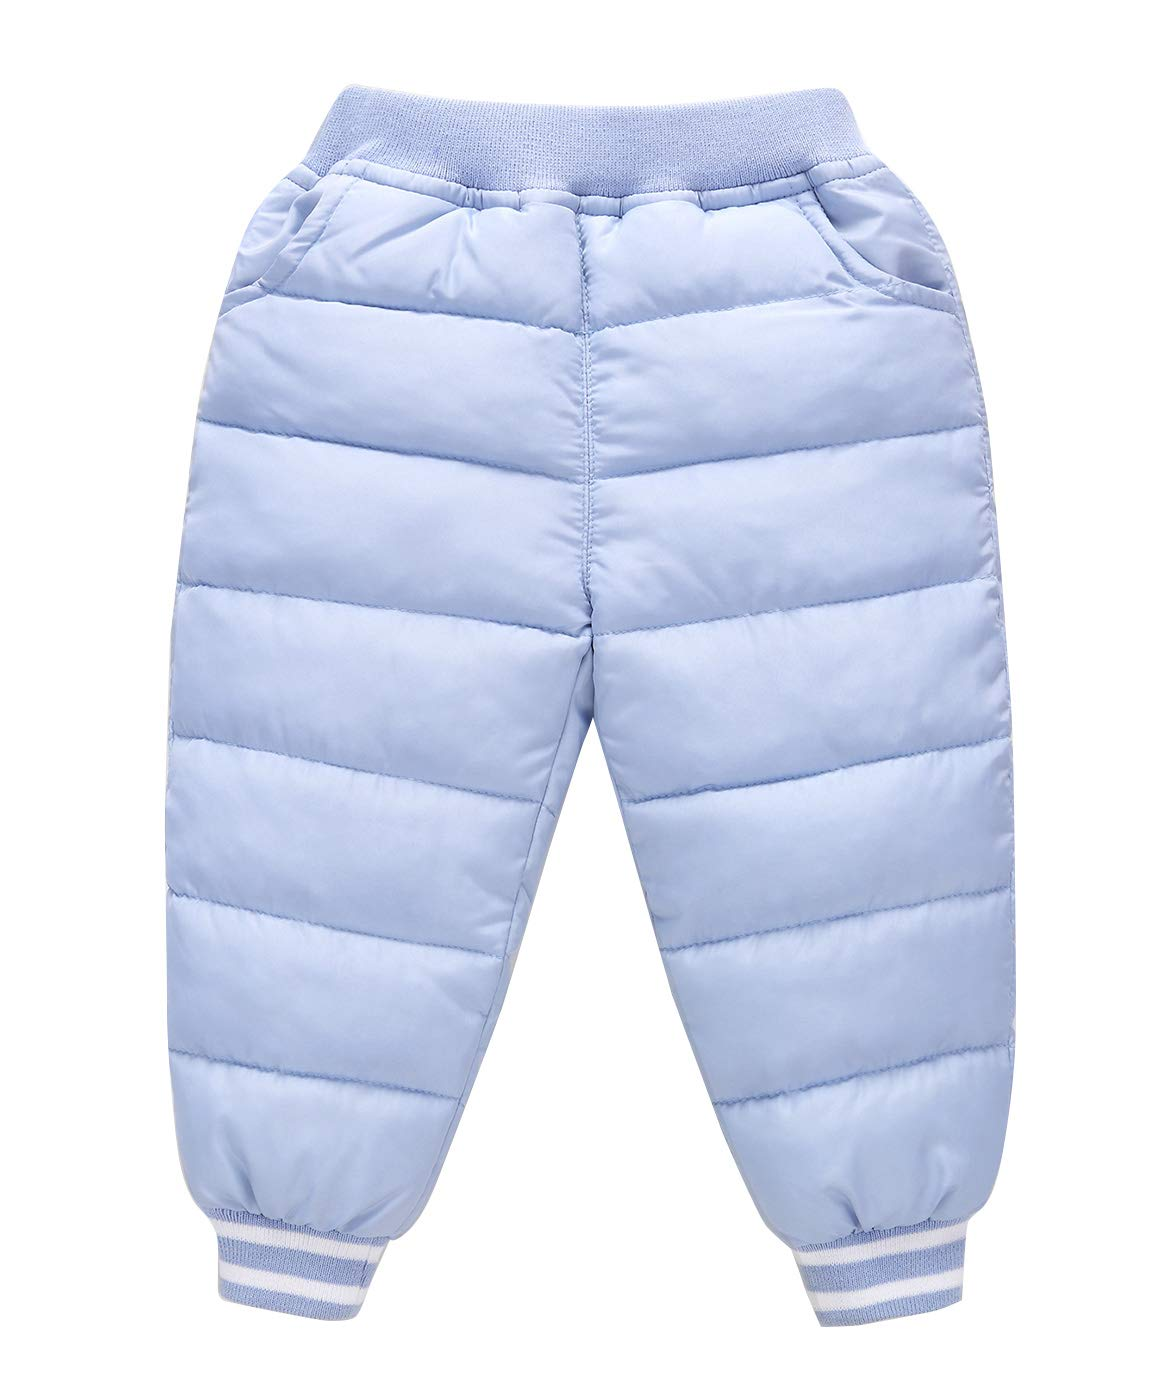 Unisex Kids Down Cotton Pants Elastic Winter Trousers Baby Boys Little Boys Thick Training Running Jogging Gym Pants Navy for 5-6T